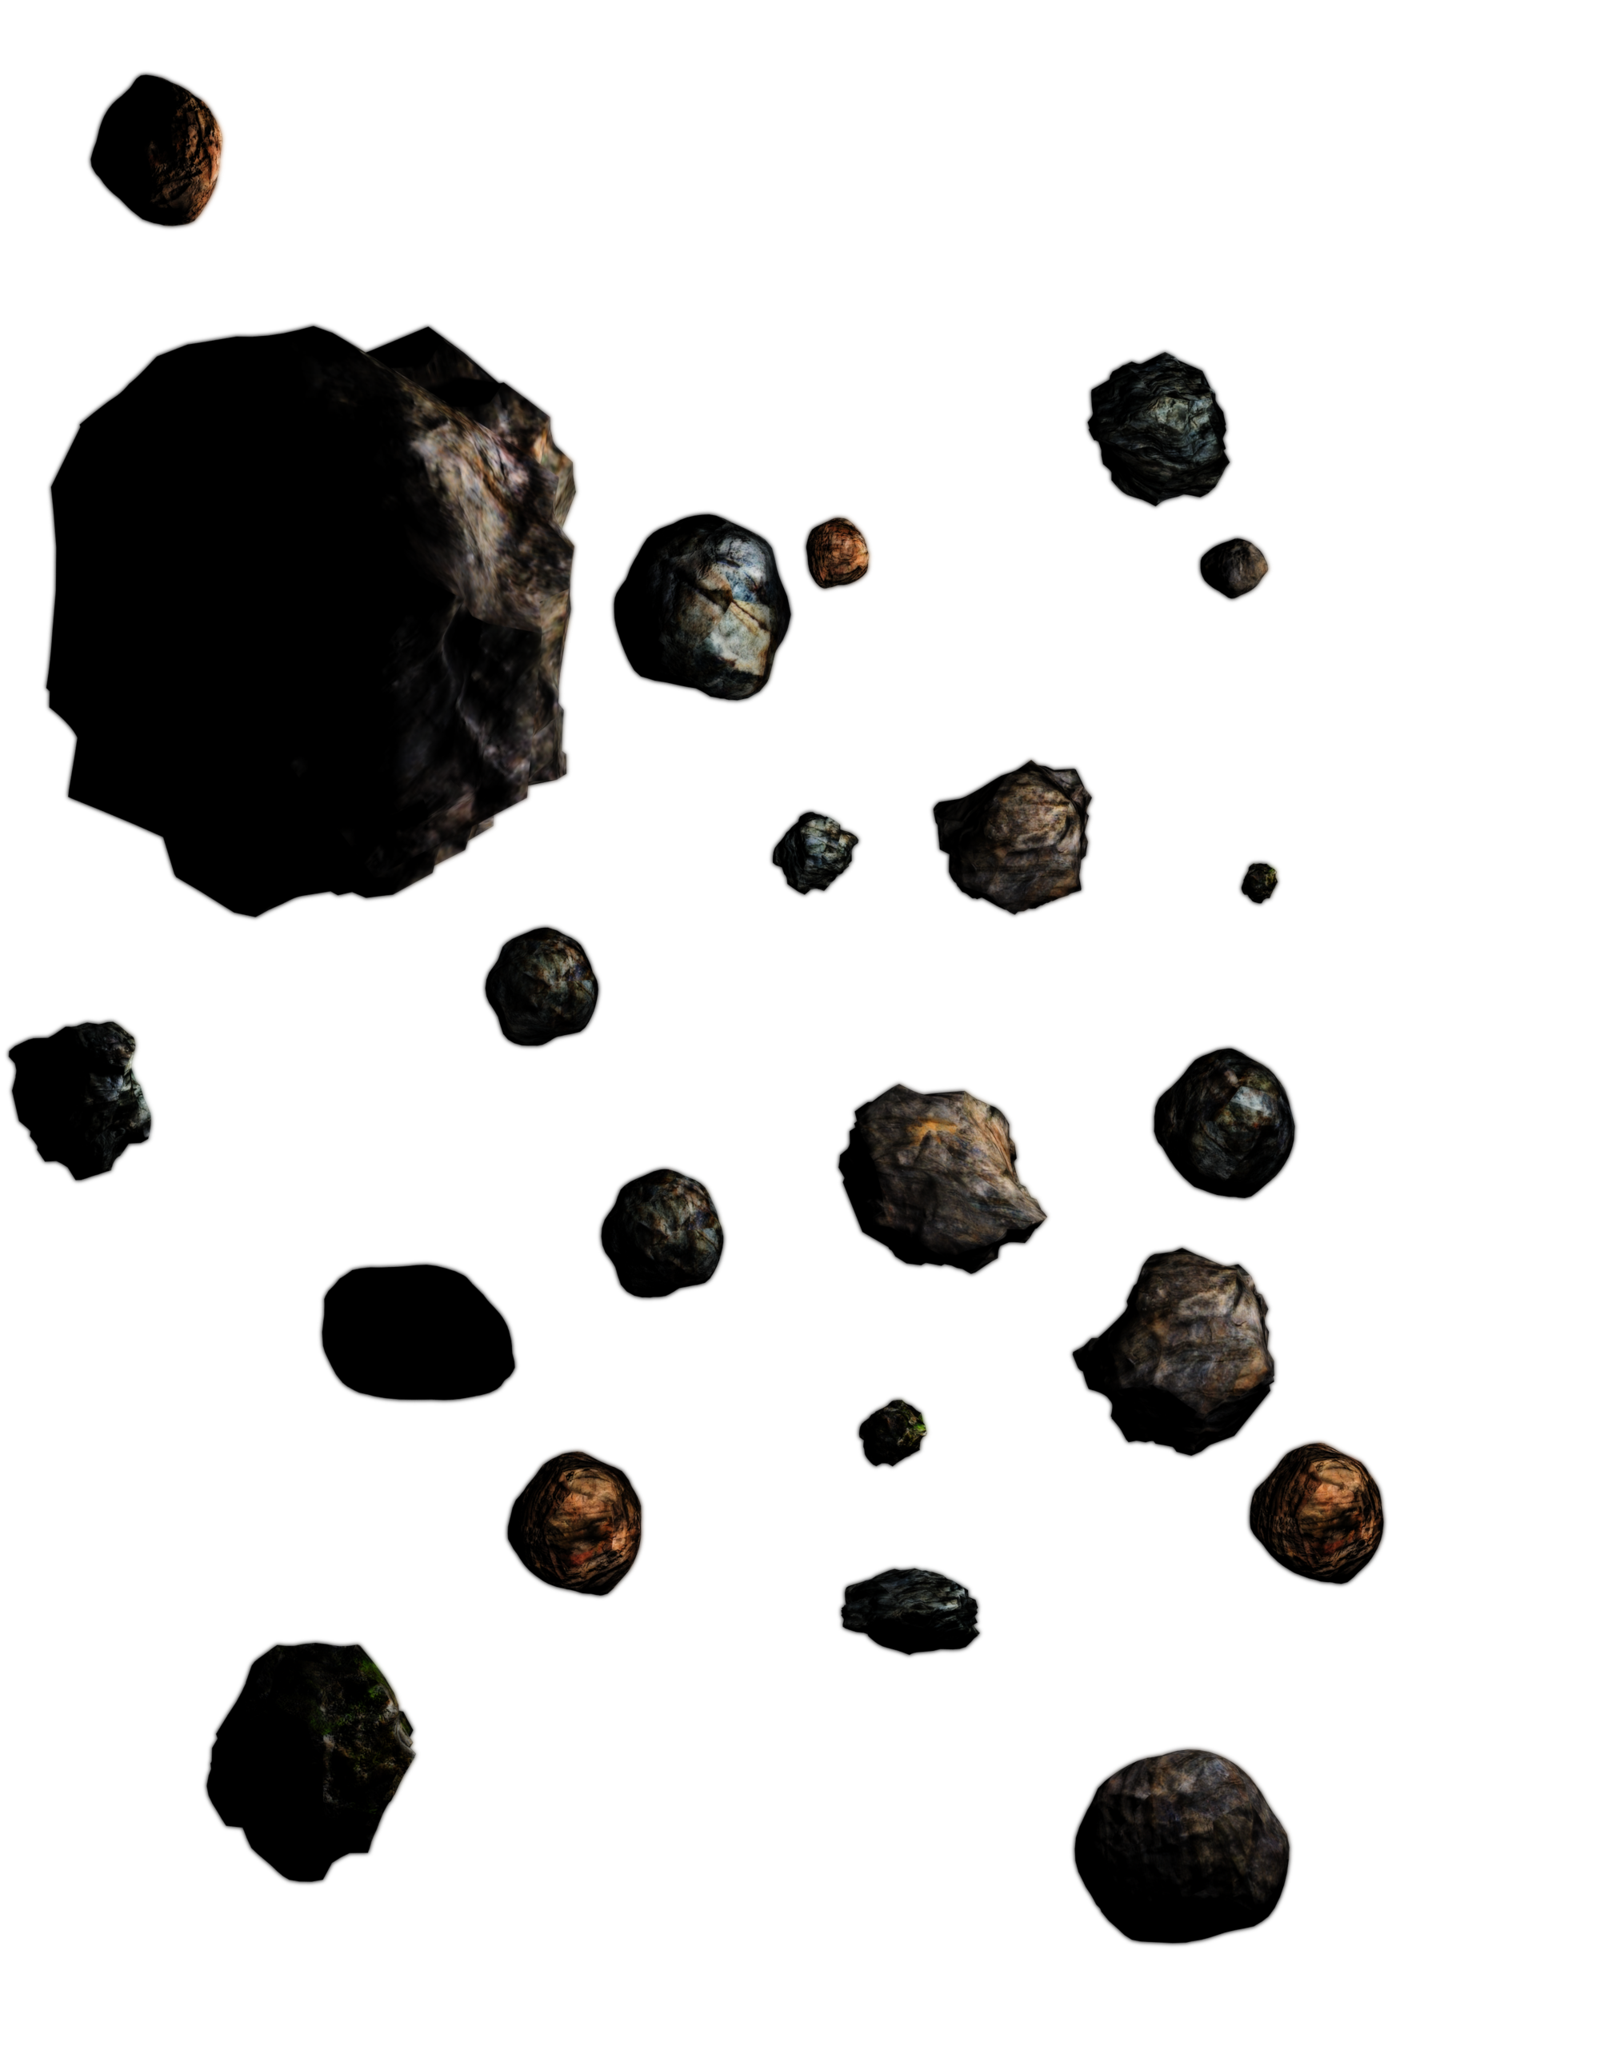 Meteor clipart transparent background. Asteroid png mart